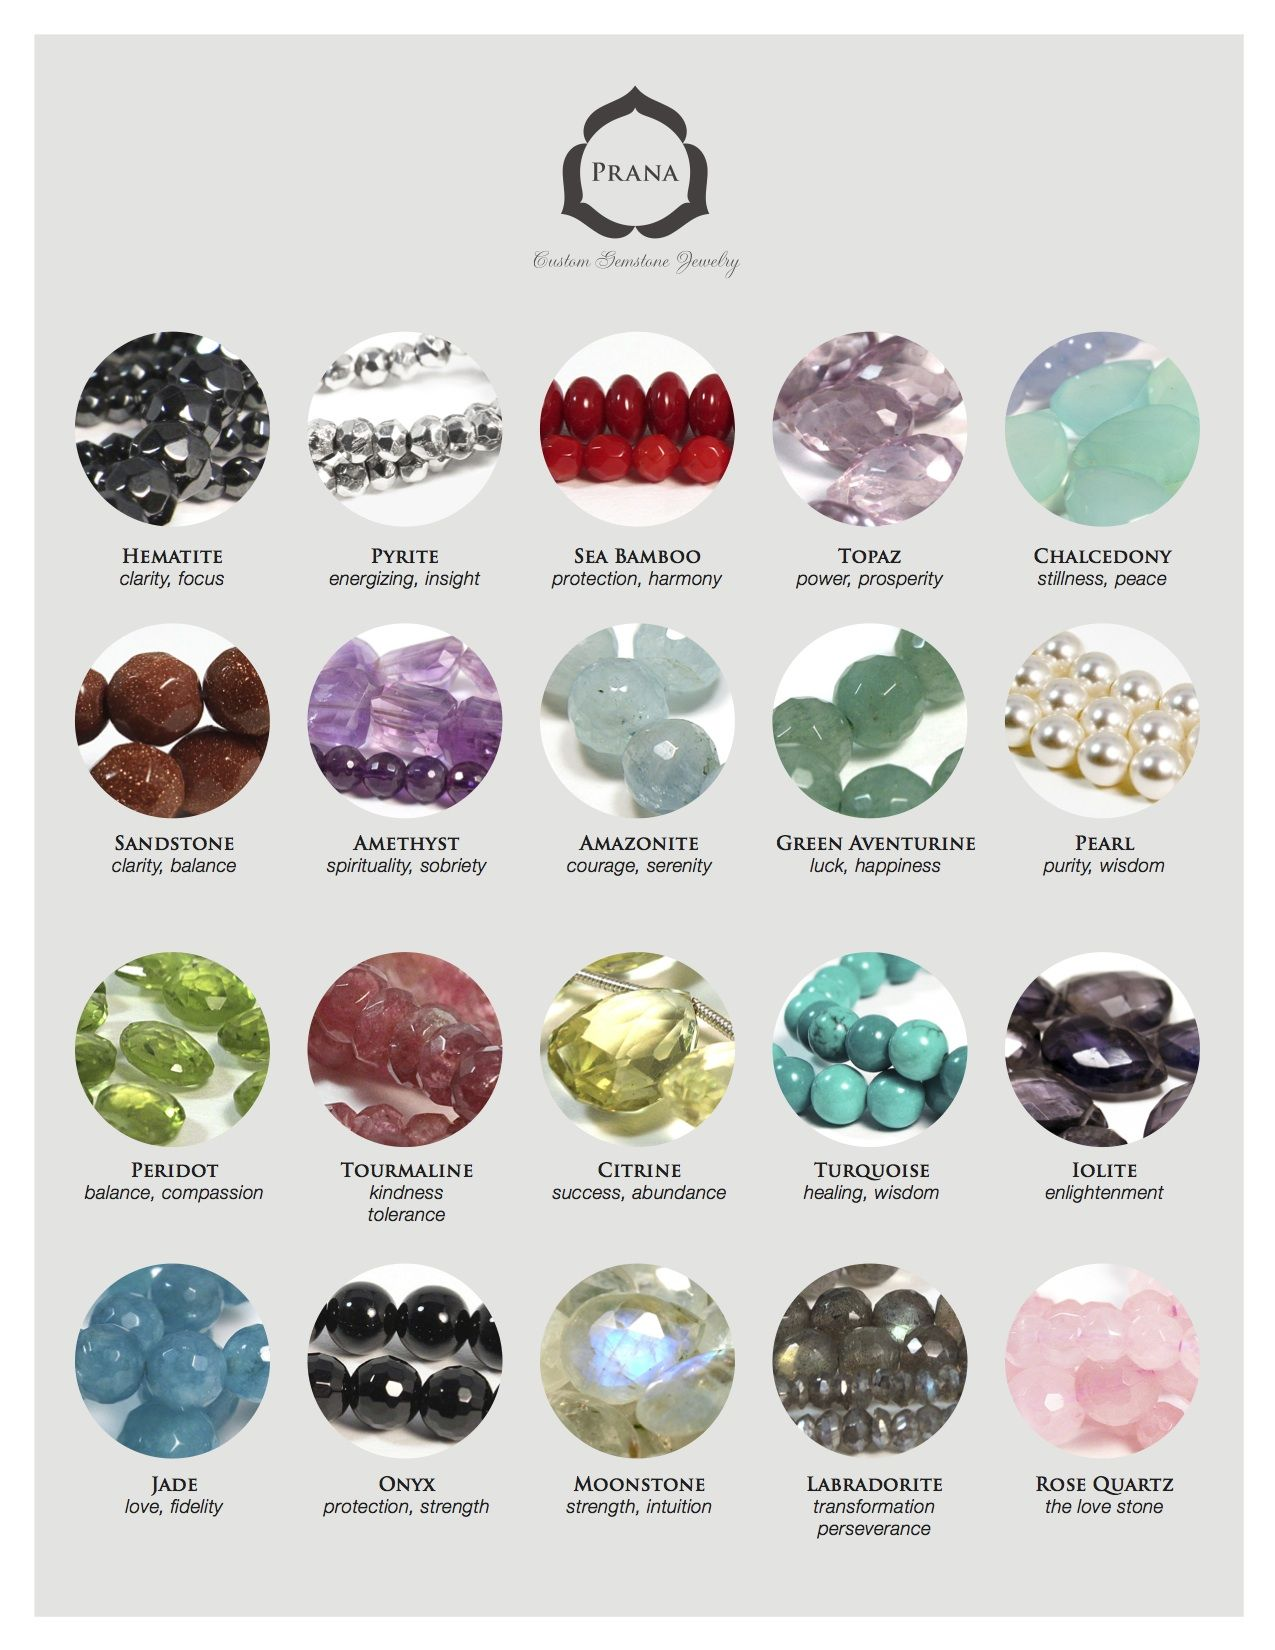 93b3109b0f1a90 Pin by JackandDiane Purdue on Gem Stones & Crystals | Crystals ...